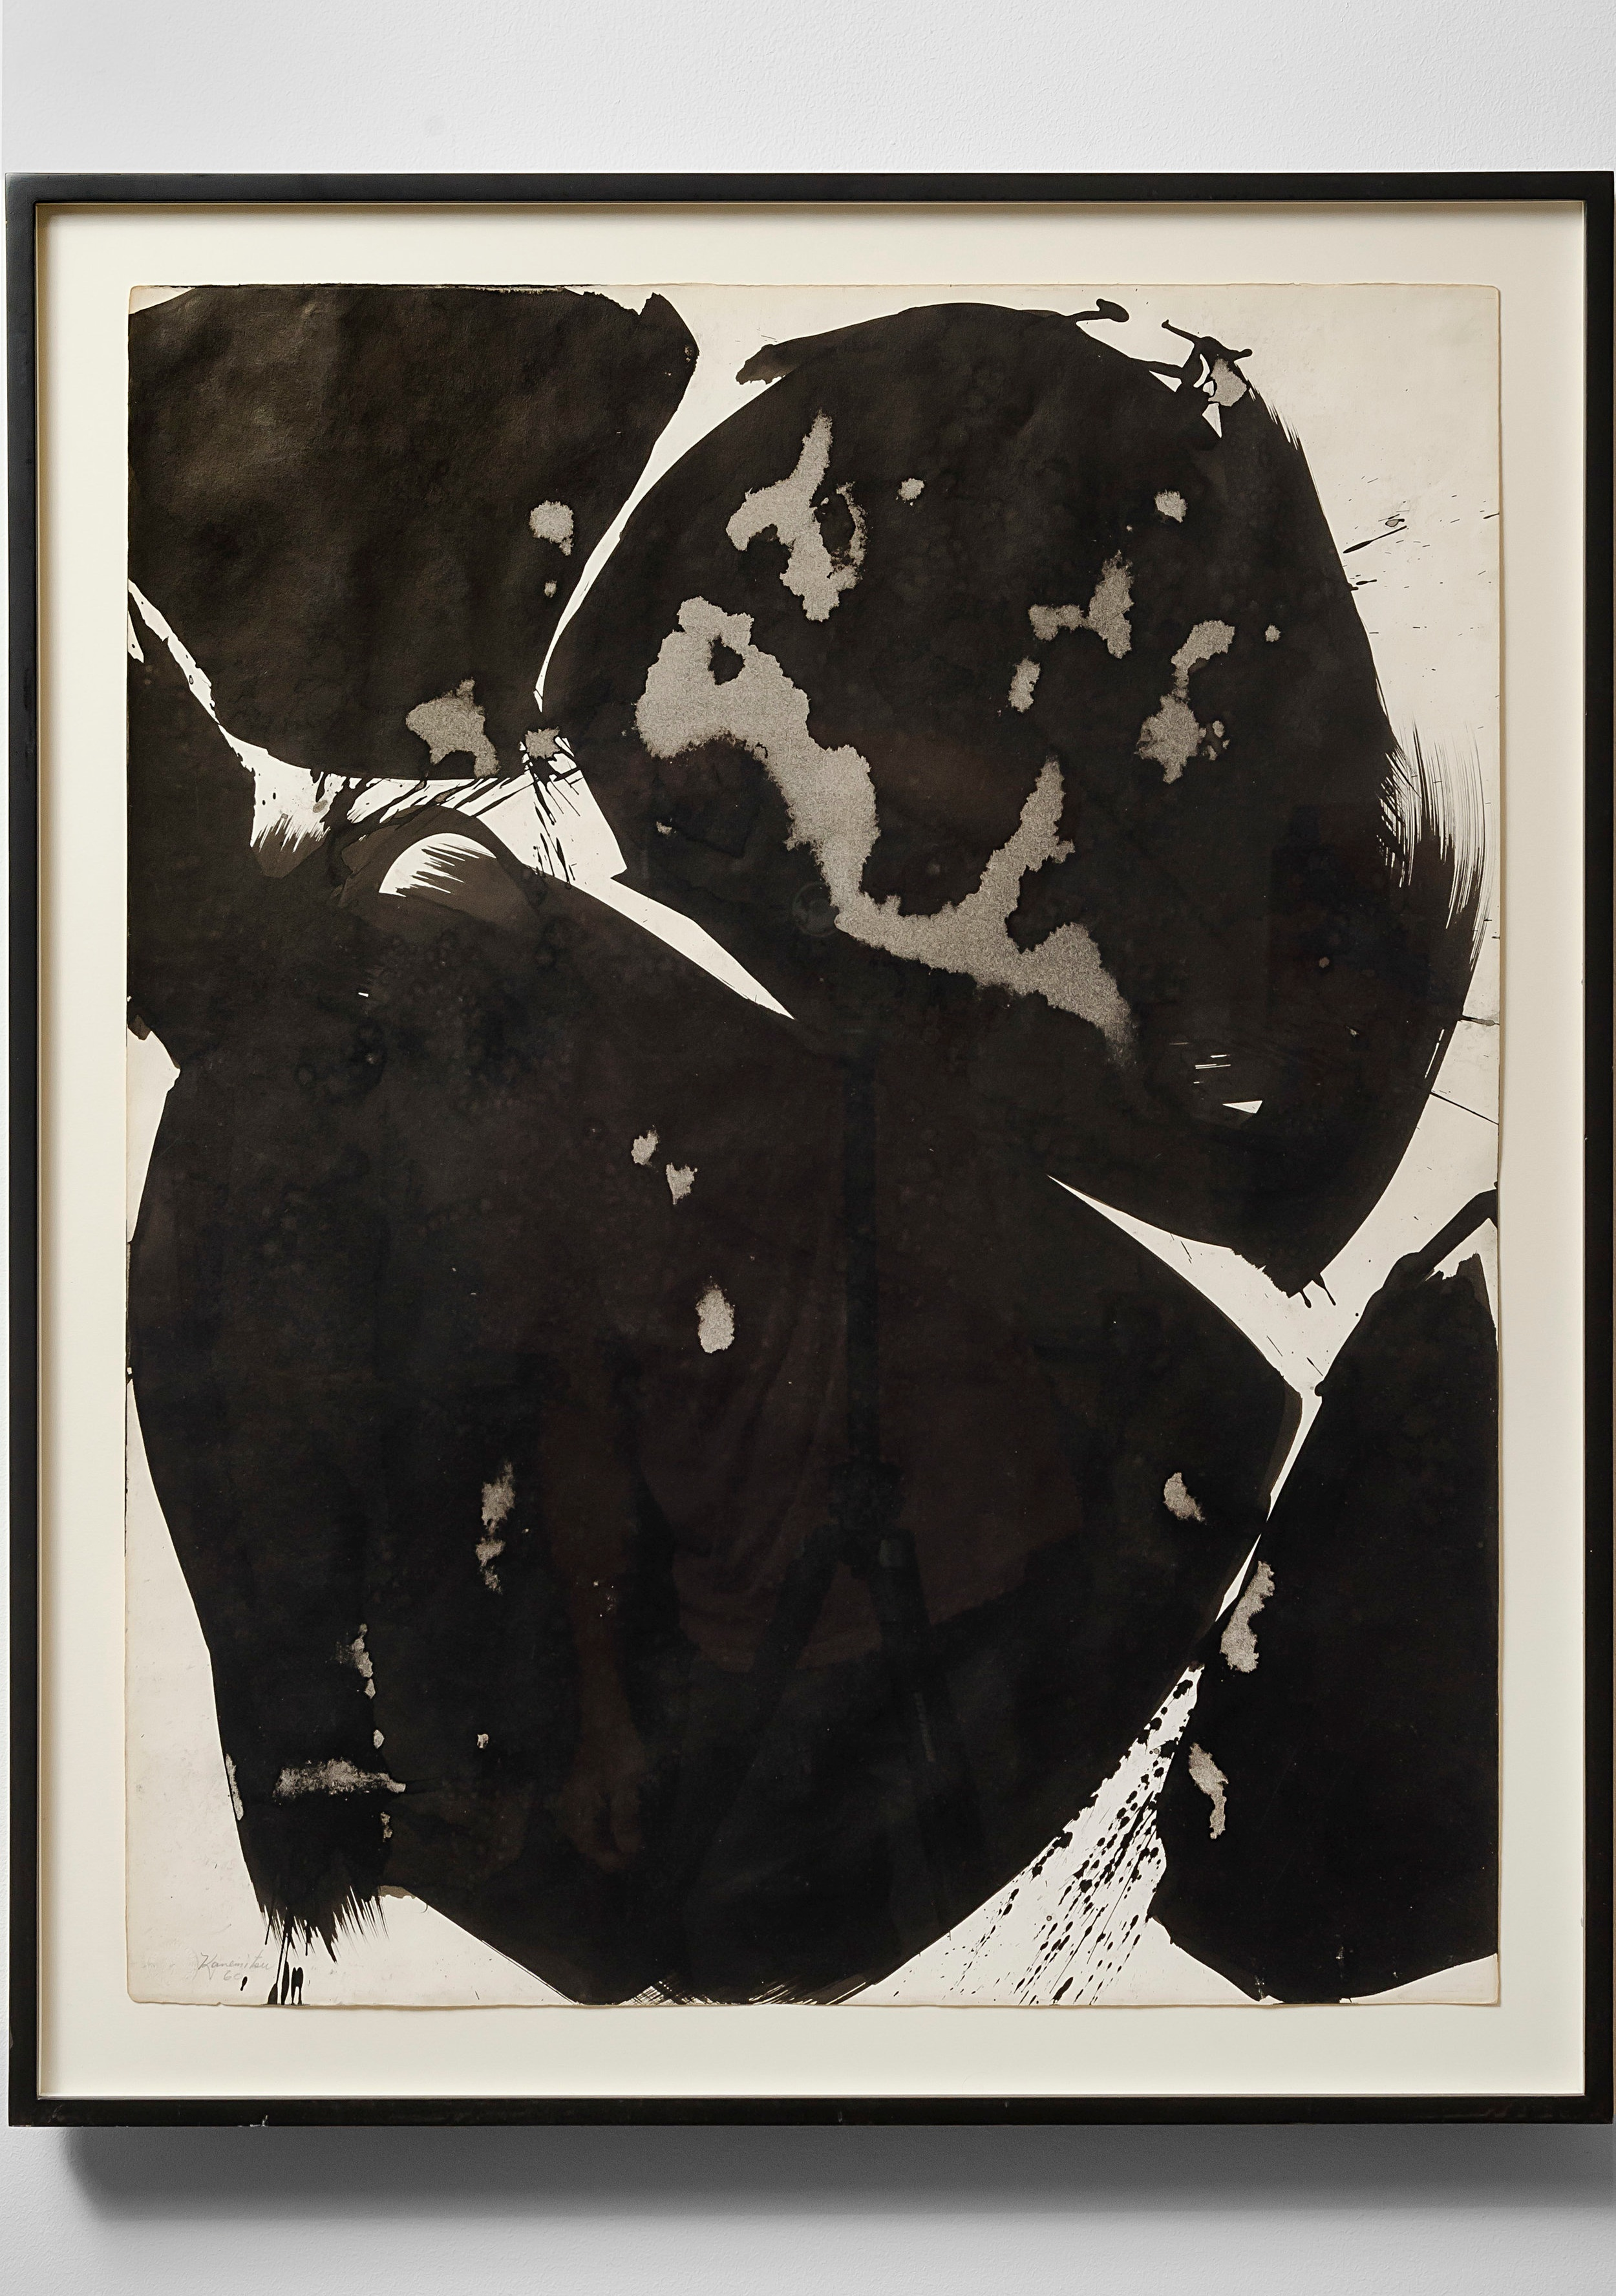 Summer #20   1960  sumi ink on paper  29 x 23 inches, 73.7 x 58.4 centimeters